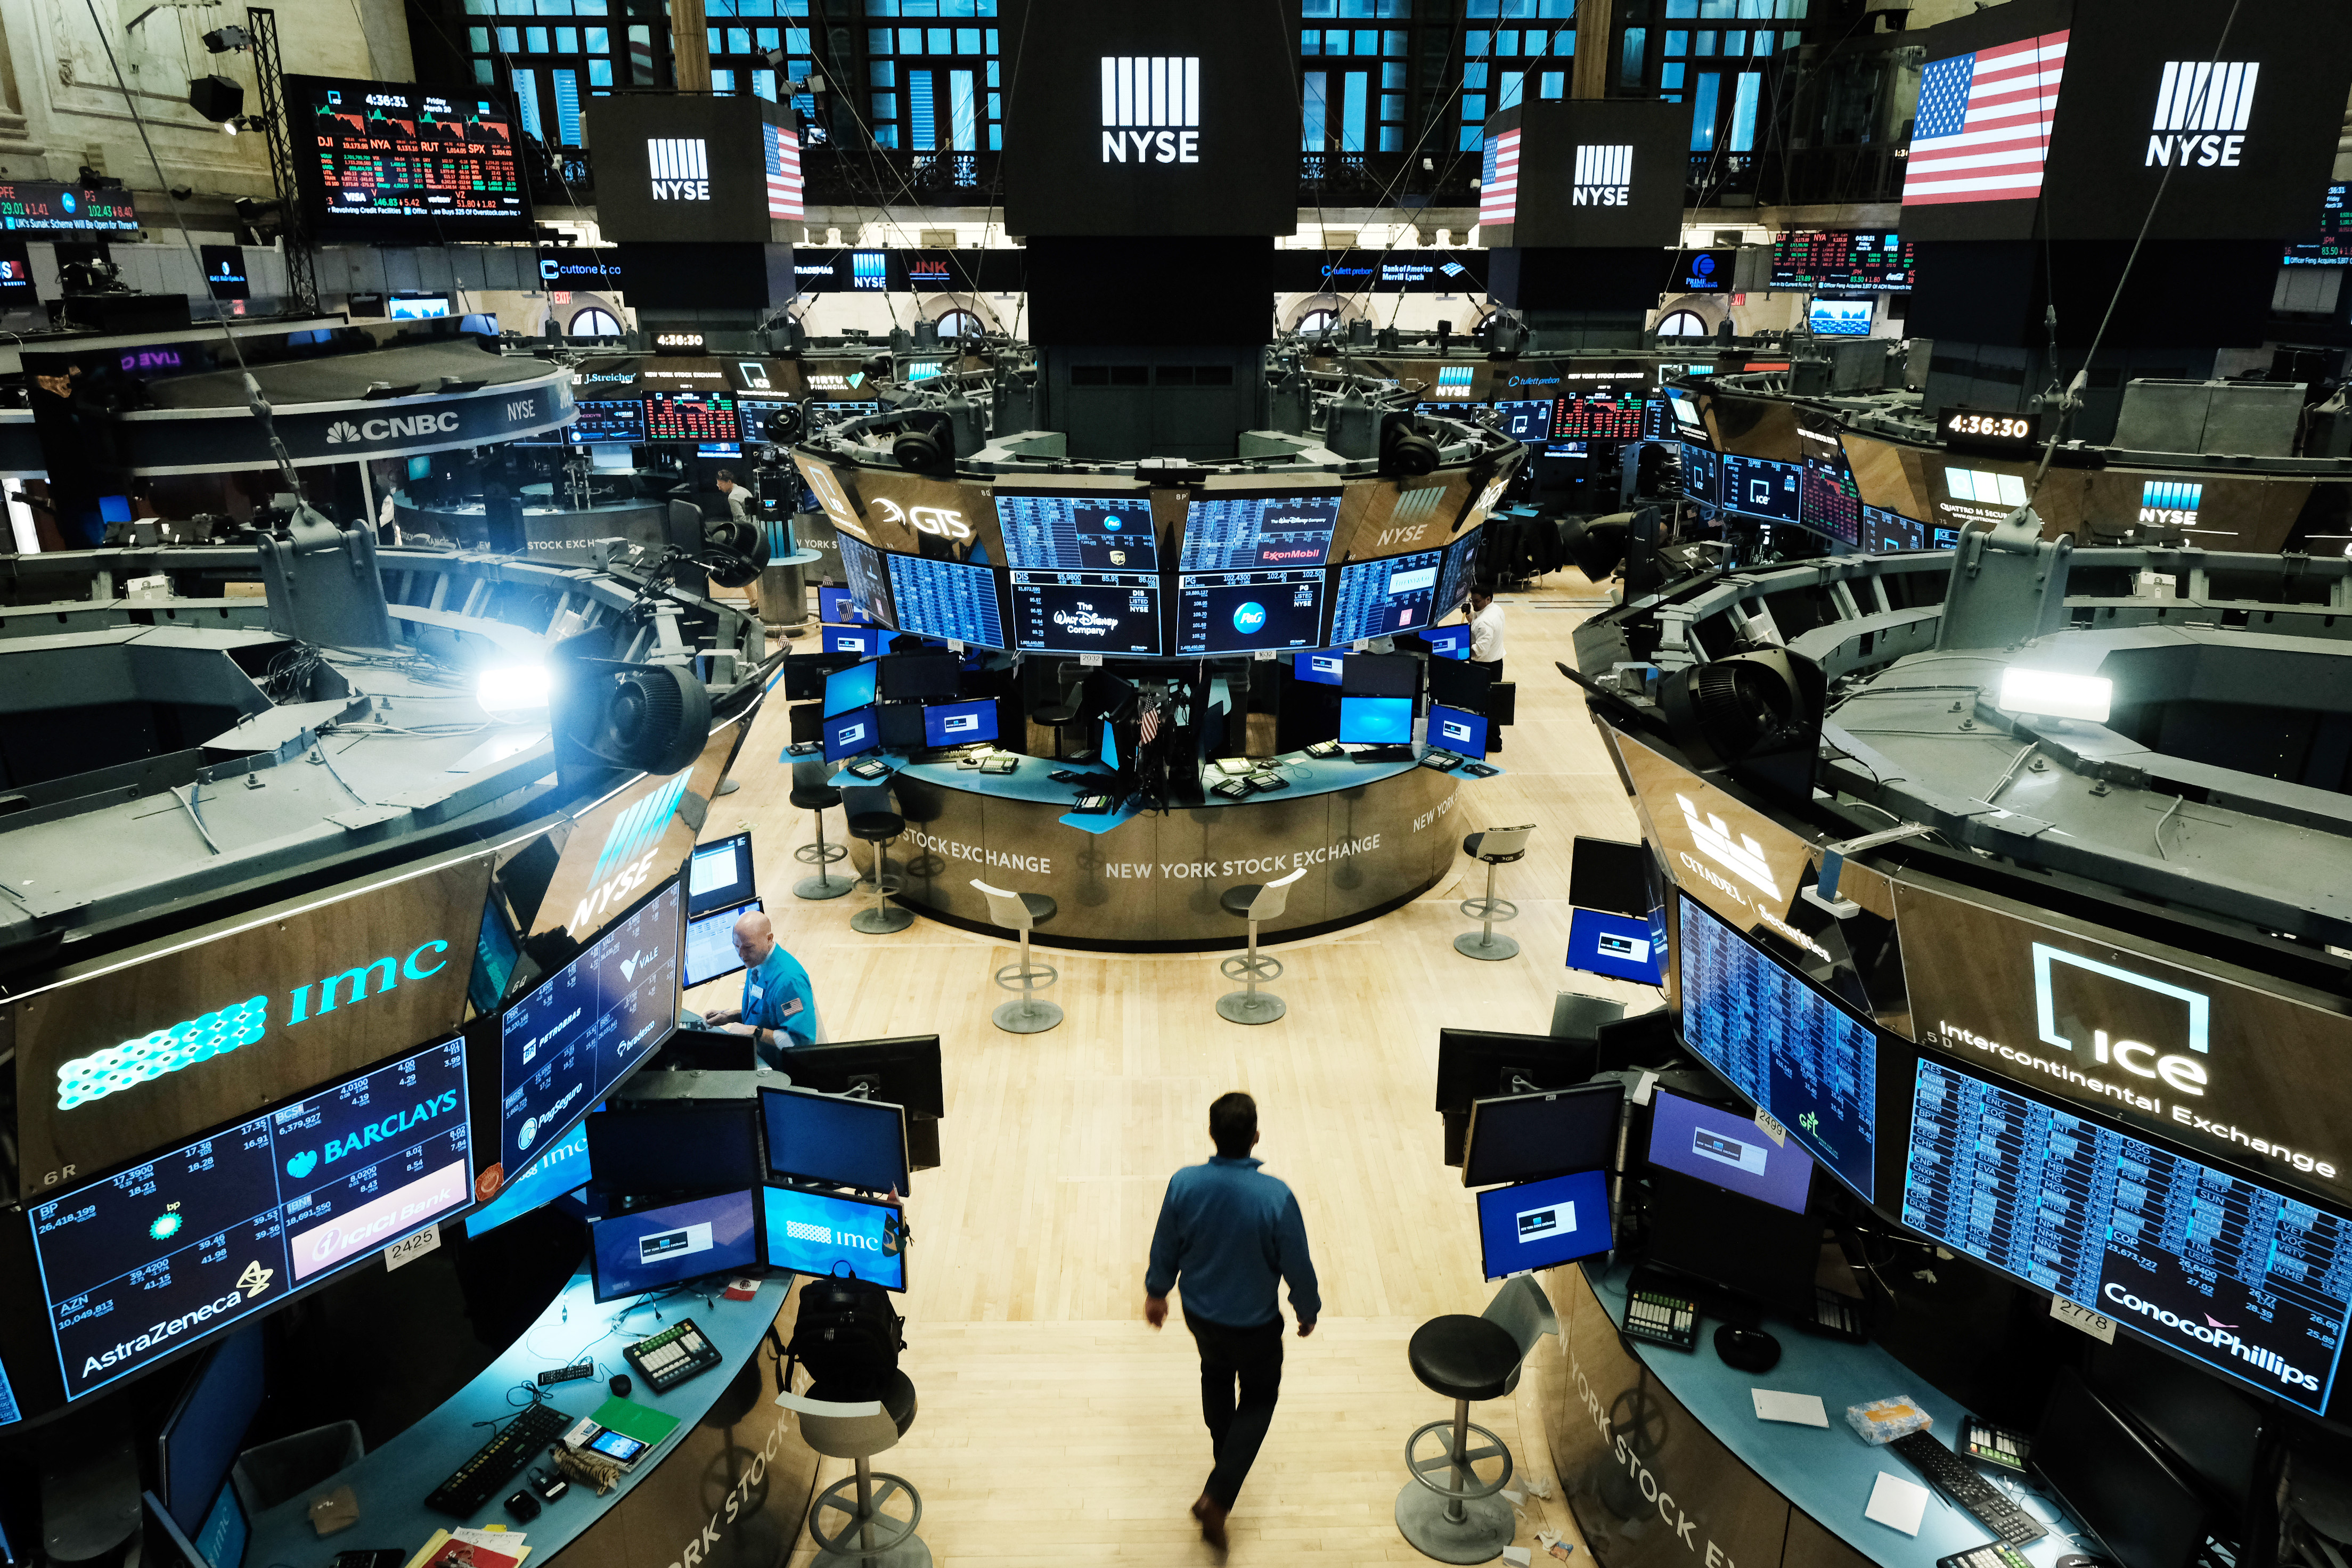 A man walks through an empty trading floor at the New York Stock Exchange.